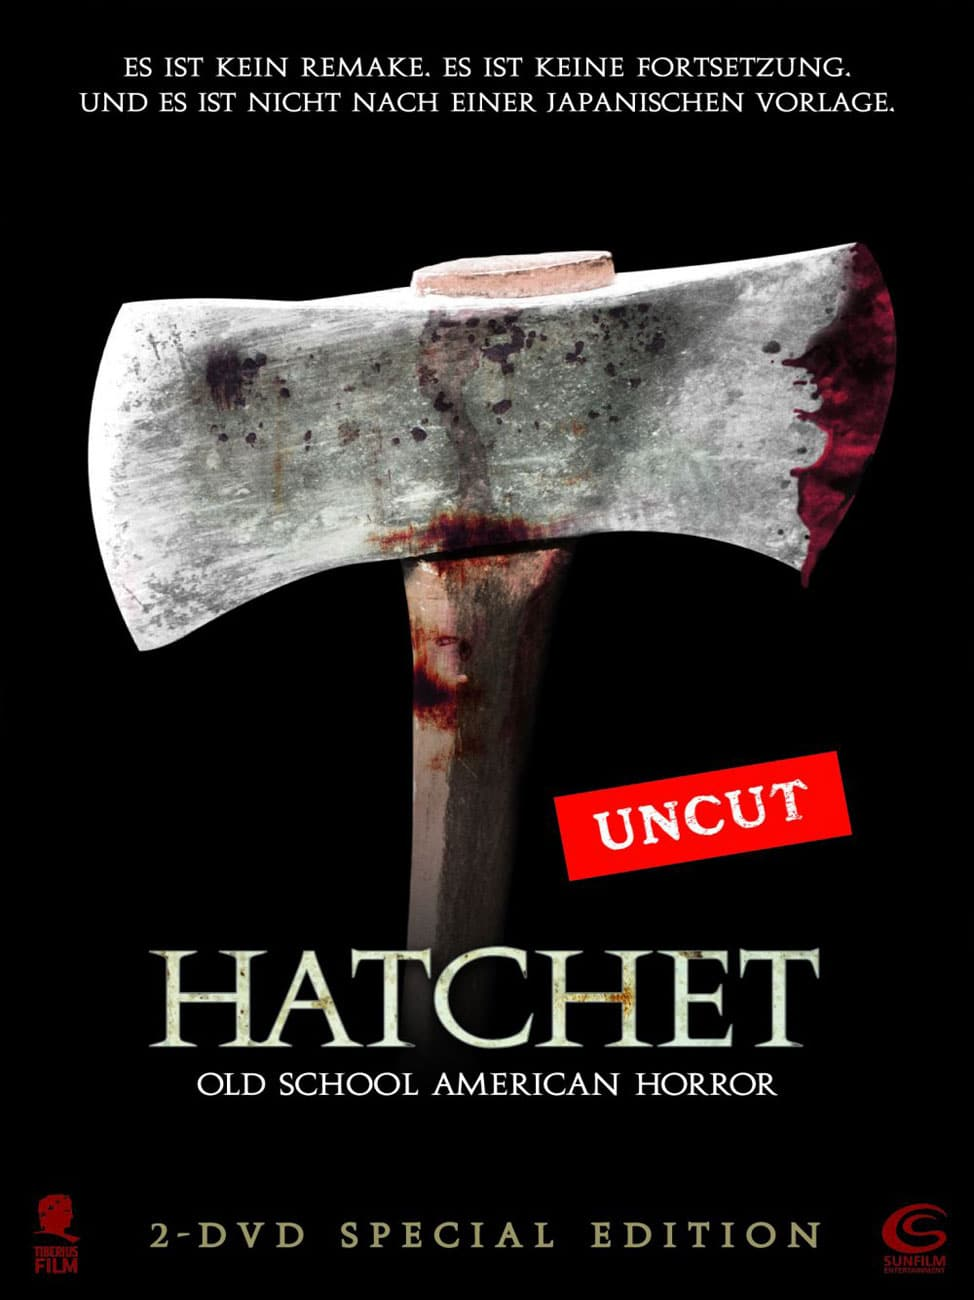 hatchet 2006 movie poster 2